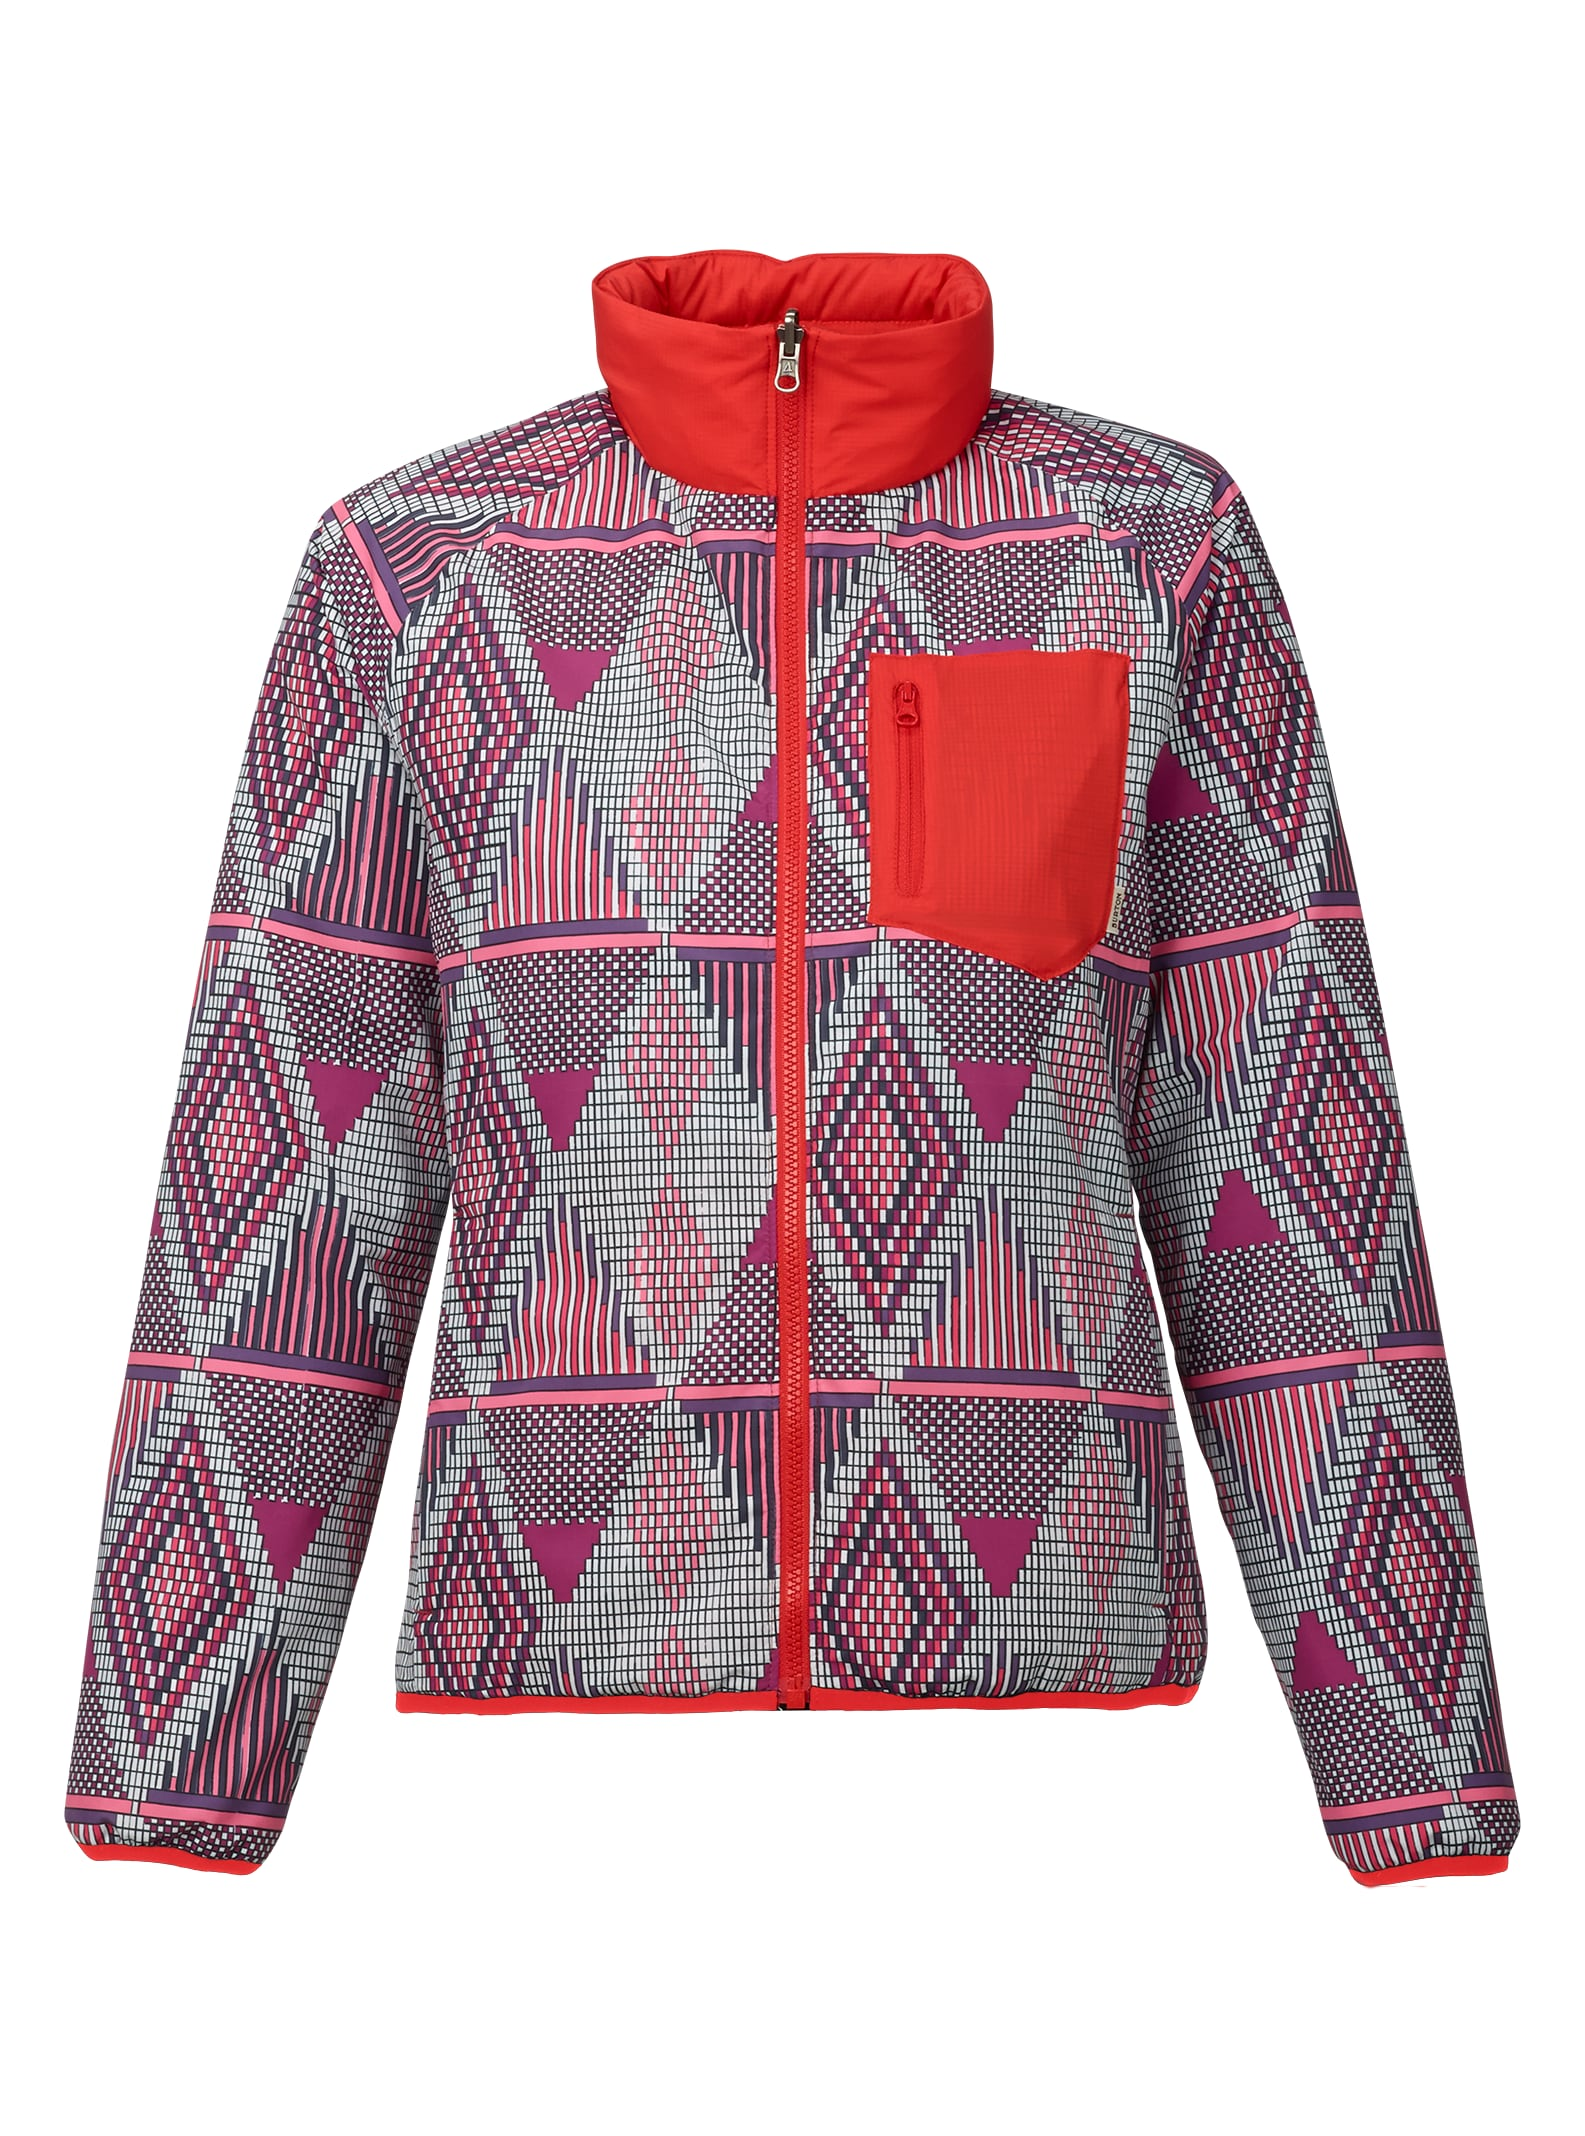 Burton Hella Light Insulator Jacket shown in Anemone De Geo / Coral